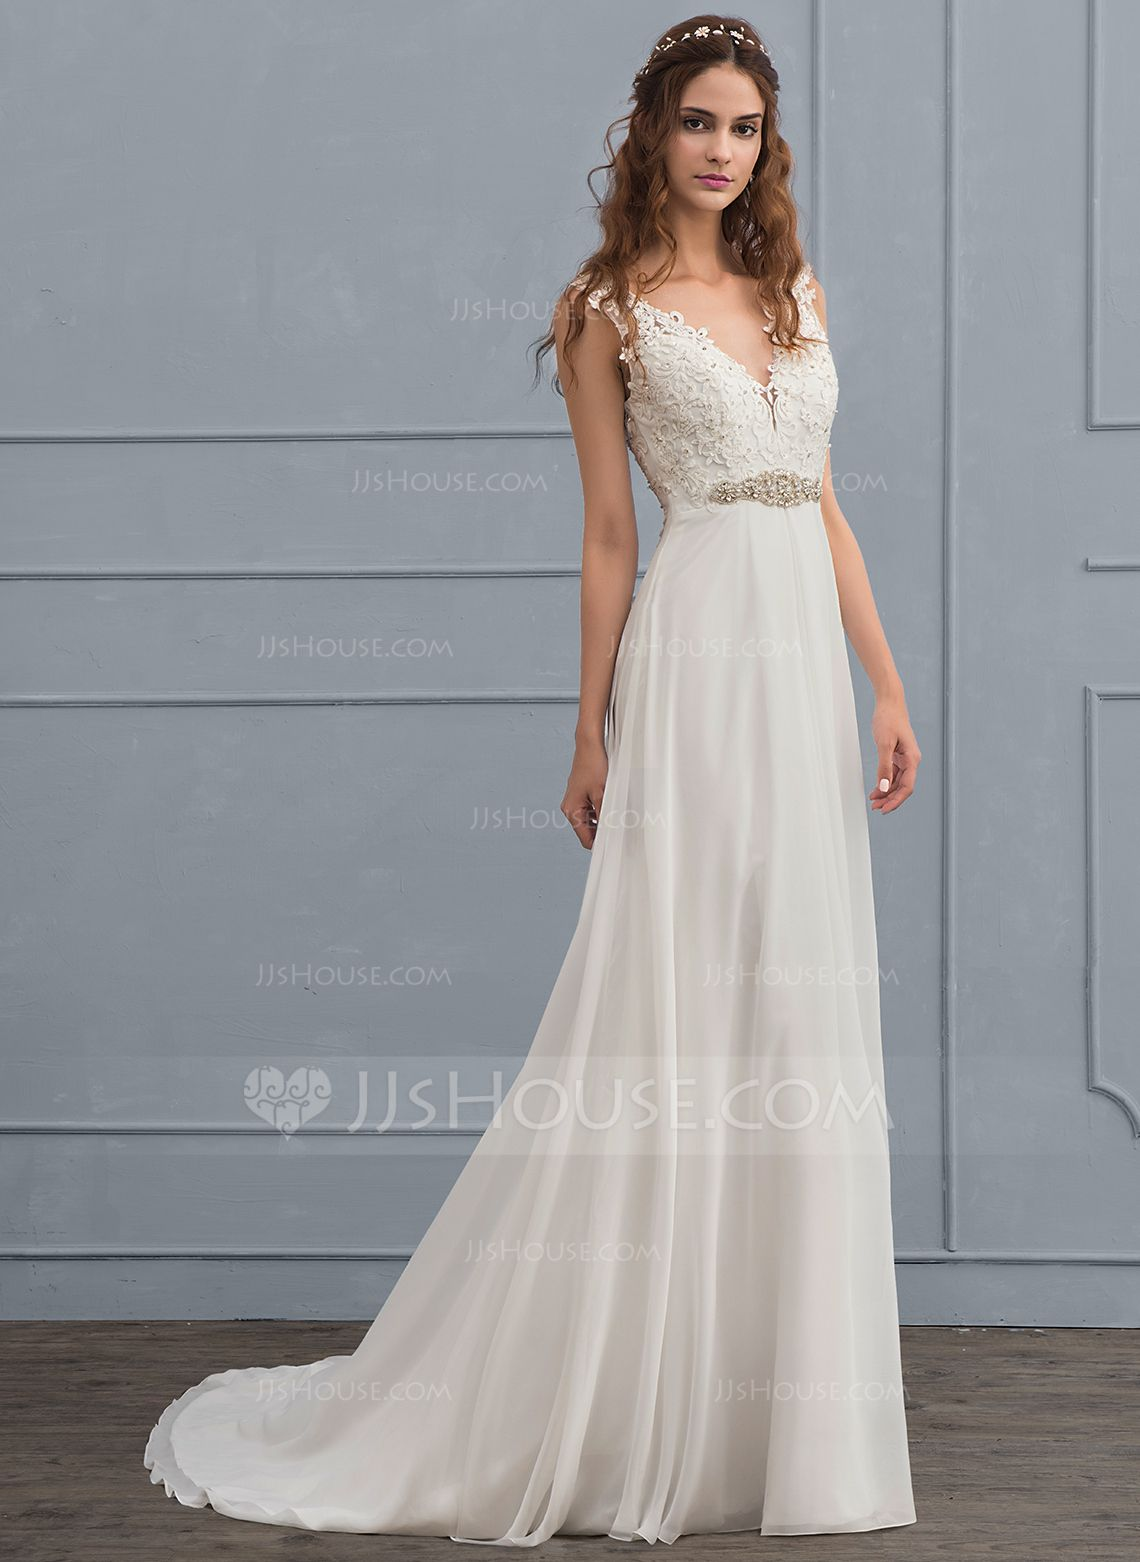 Funky Casual Wedding Gowns Model - All Wedding Dresses ...